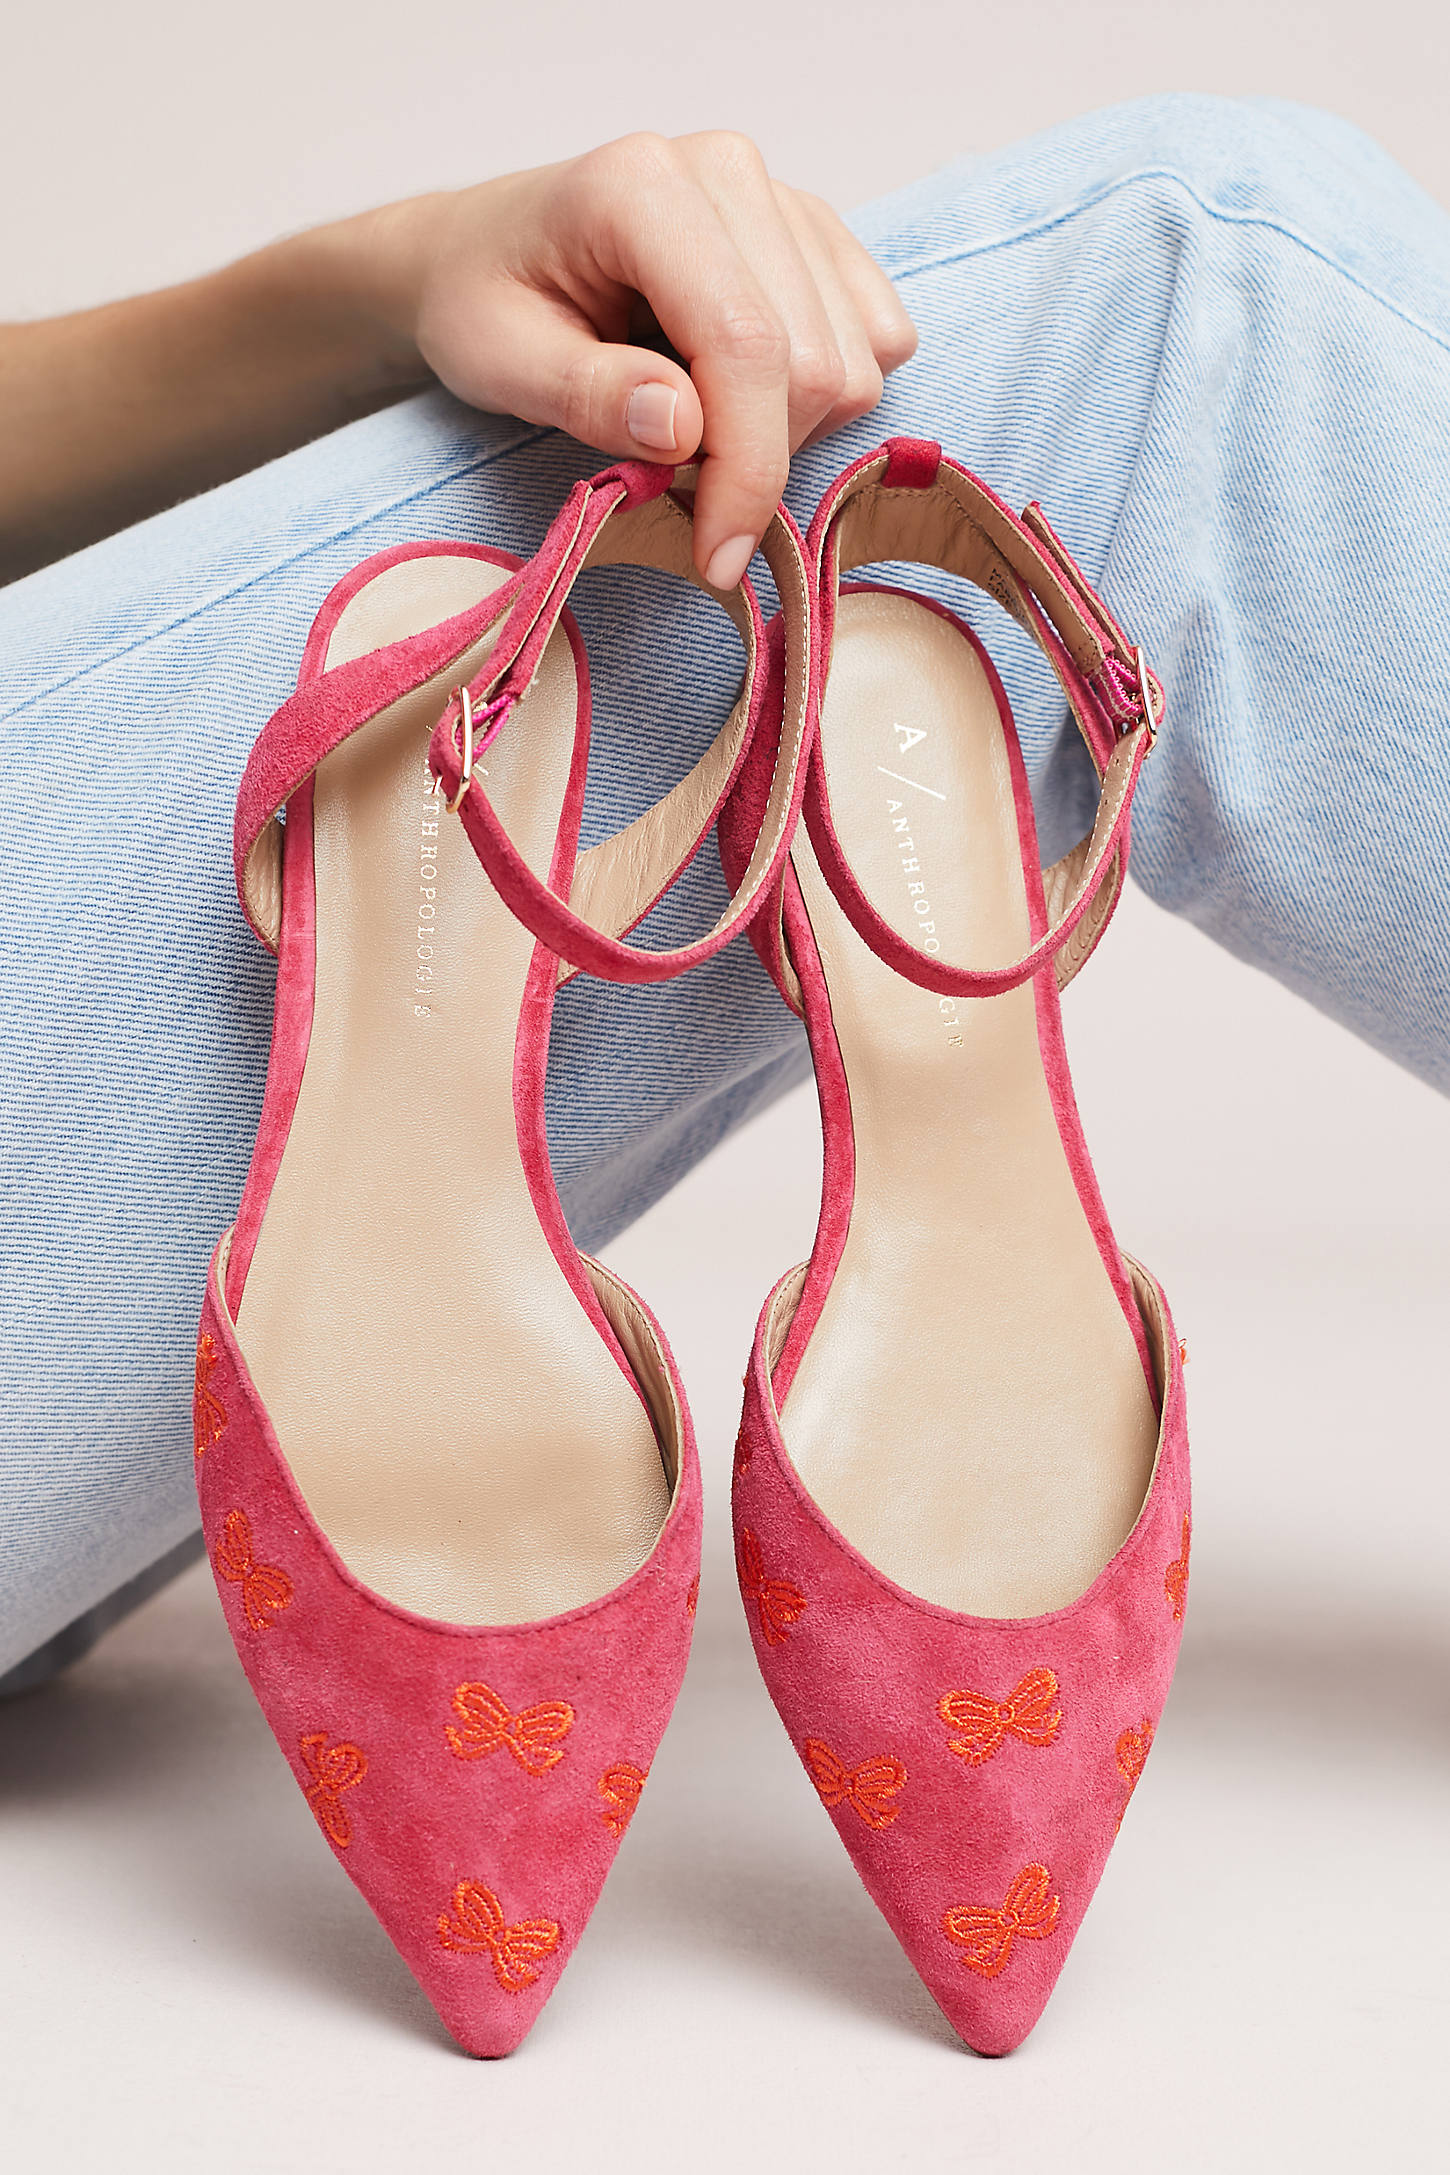 Anthropologie Embroidered Bow Ballet Flats